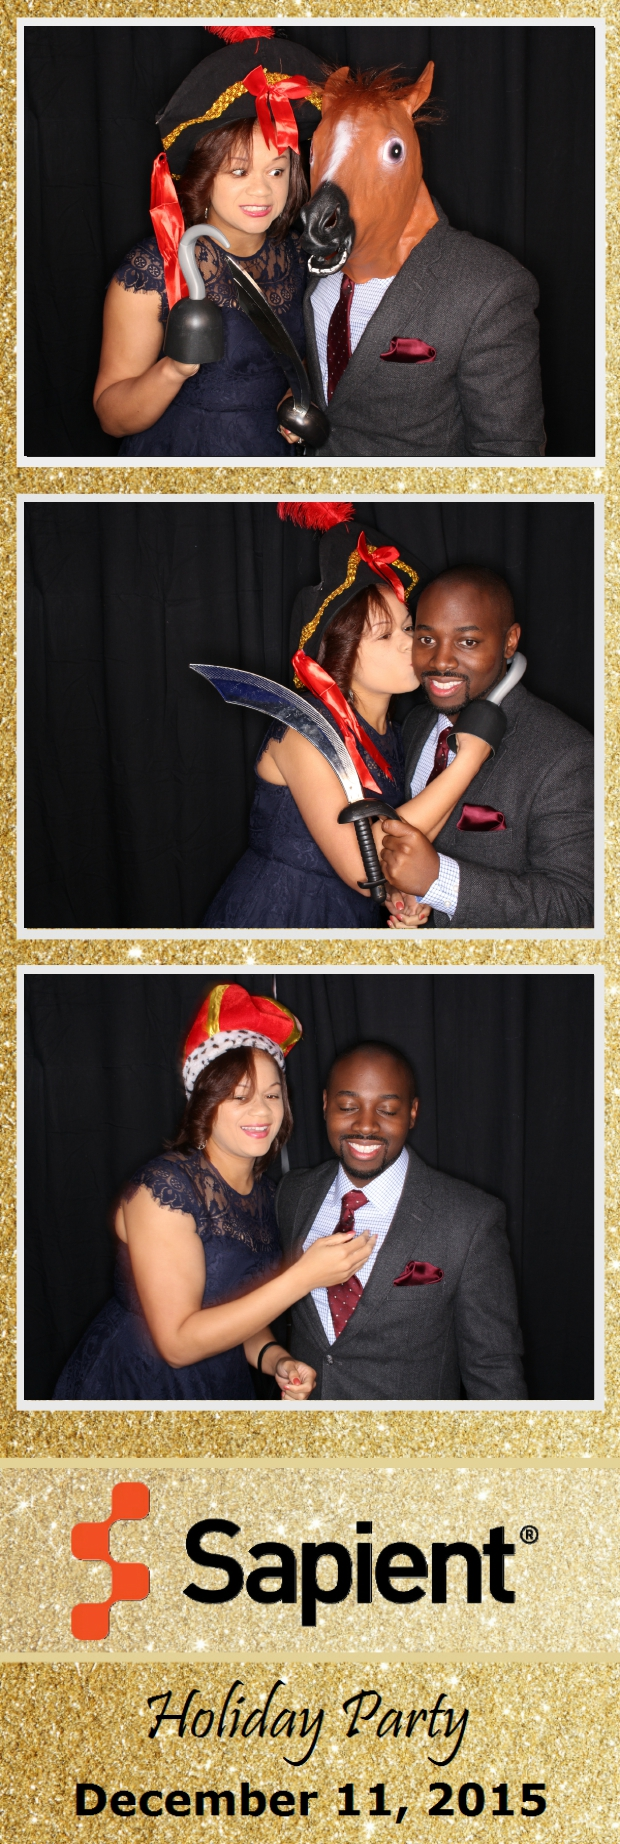 Guest House Events Photo Booth Sapient Holiday Party (14).jpg